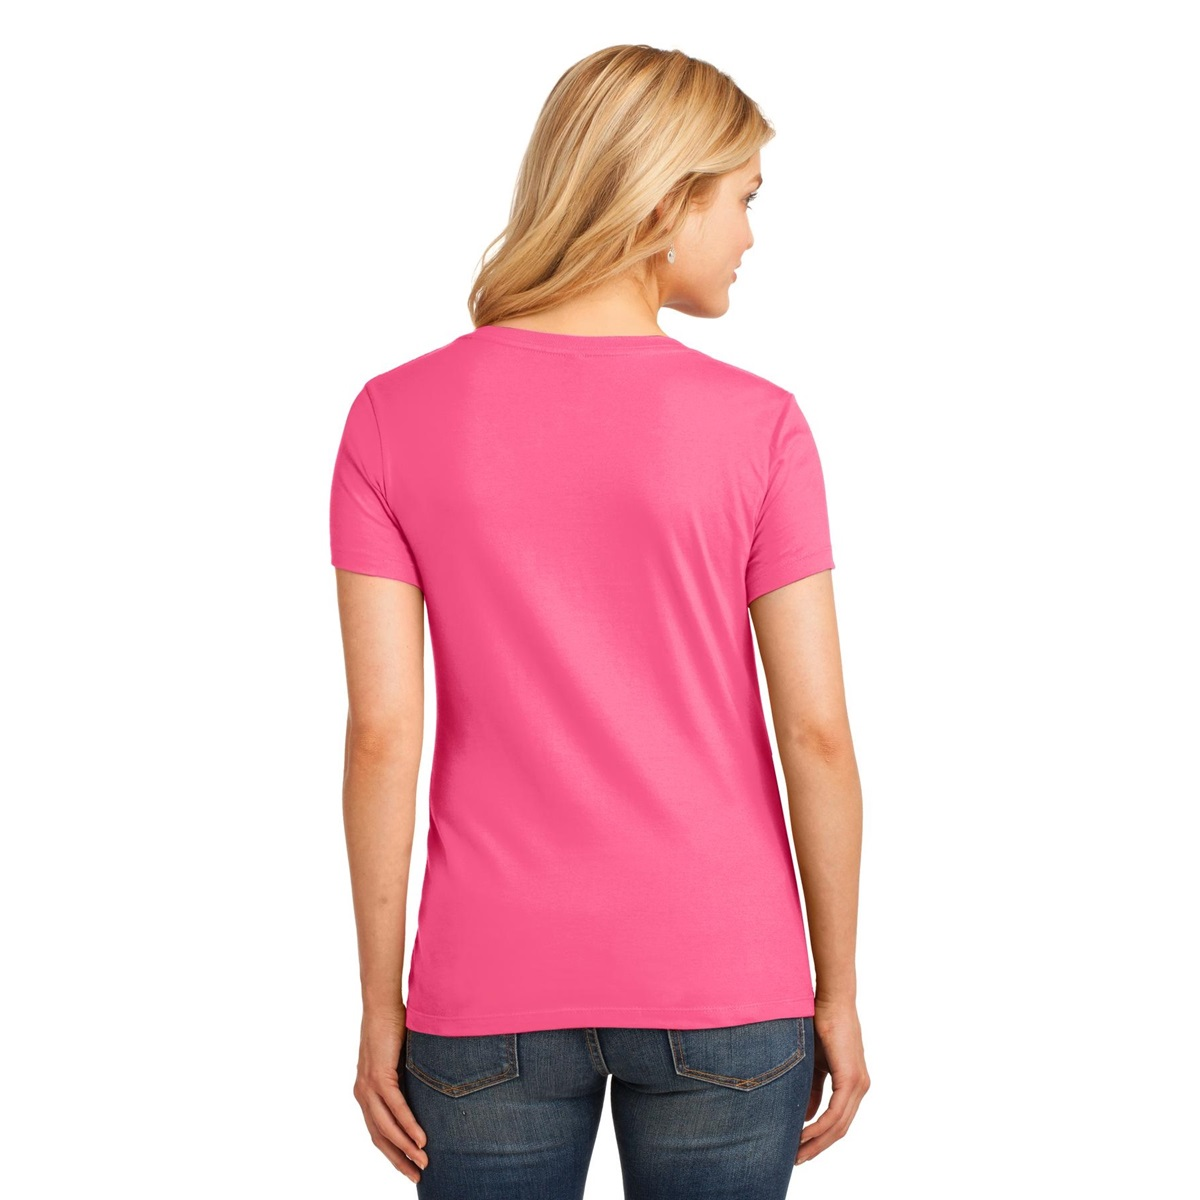 Port & Company LPC54V Ladies 5.4-oz Cotton V-Neck T-Shirt - Neon ...